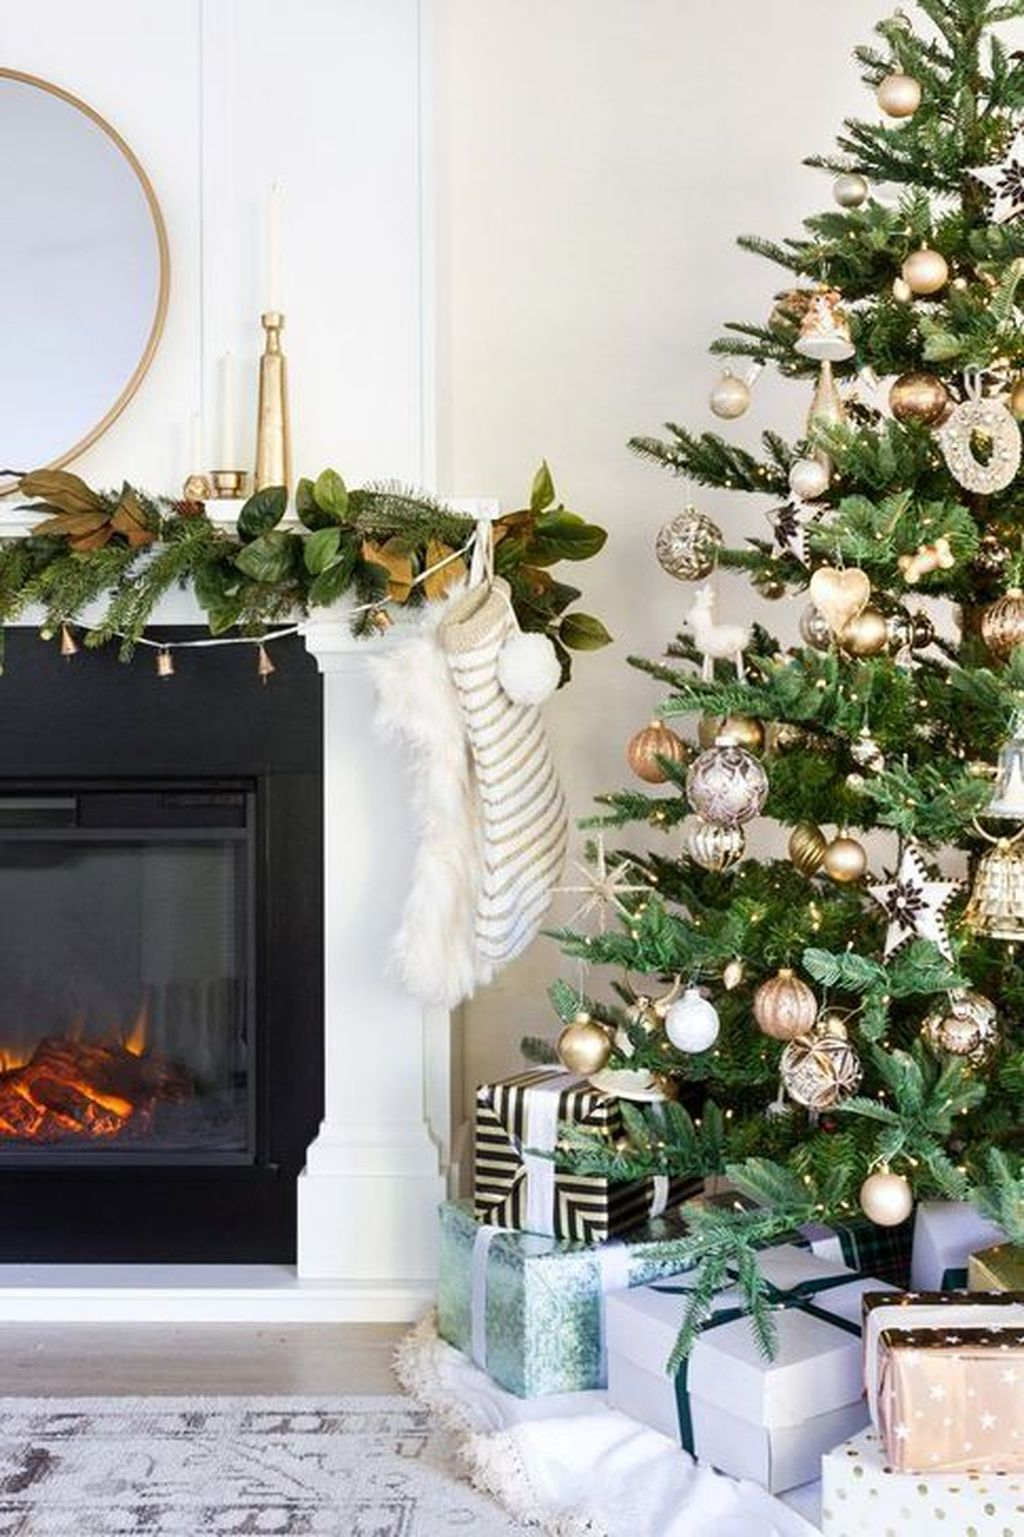 Beautiful Christmas Interior Design Ideas You Never Seen Before 25